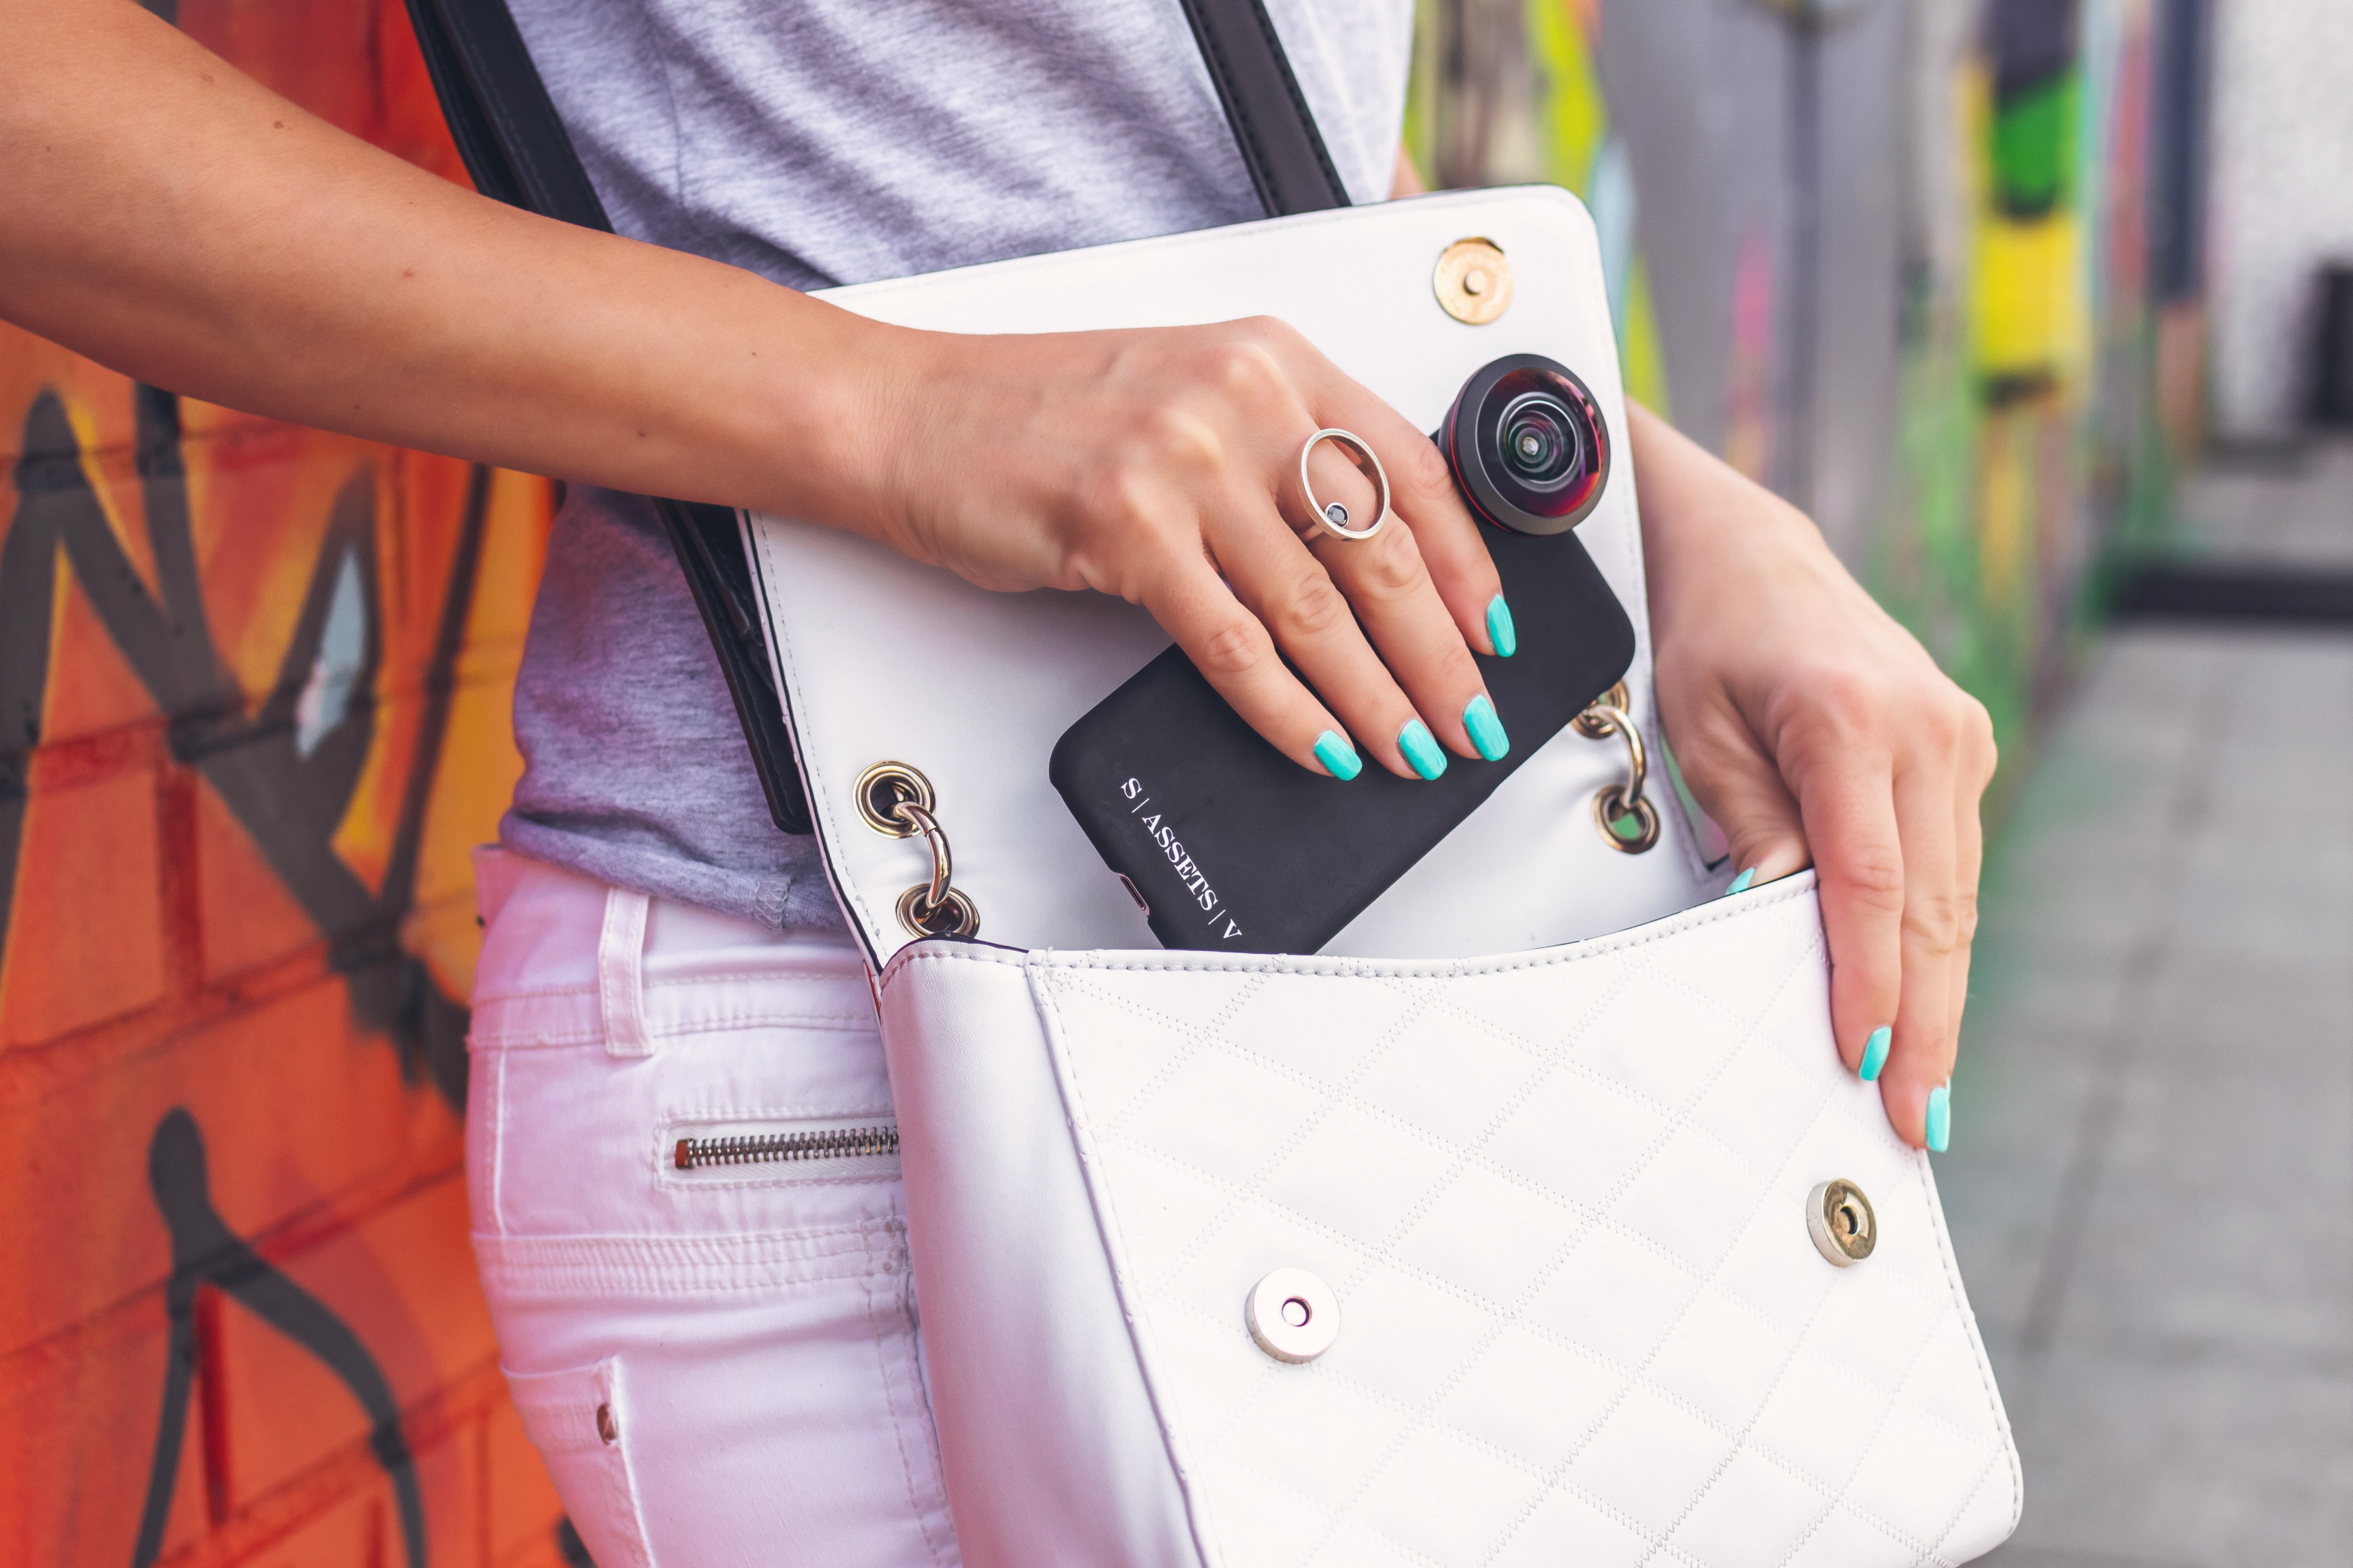 A white handbag is slung across a woman's body. It is open and the woman is slipping her phone into it. She has turquoise nail polish on and behind her is a wall with red and green graffiti.